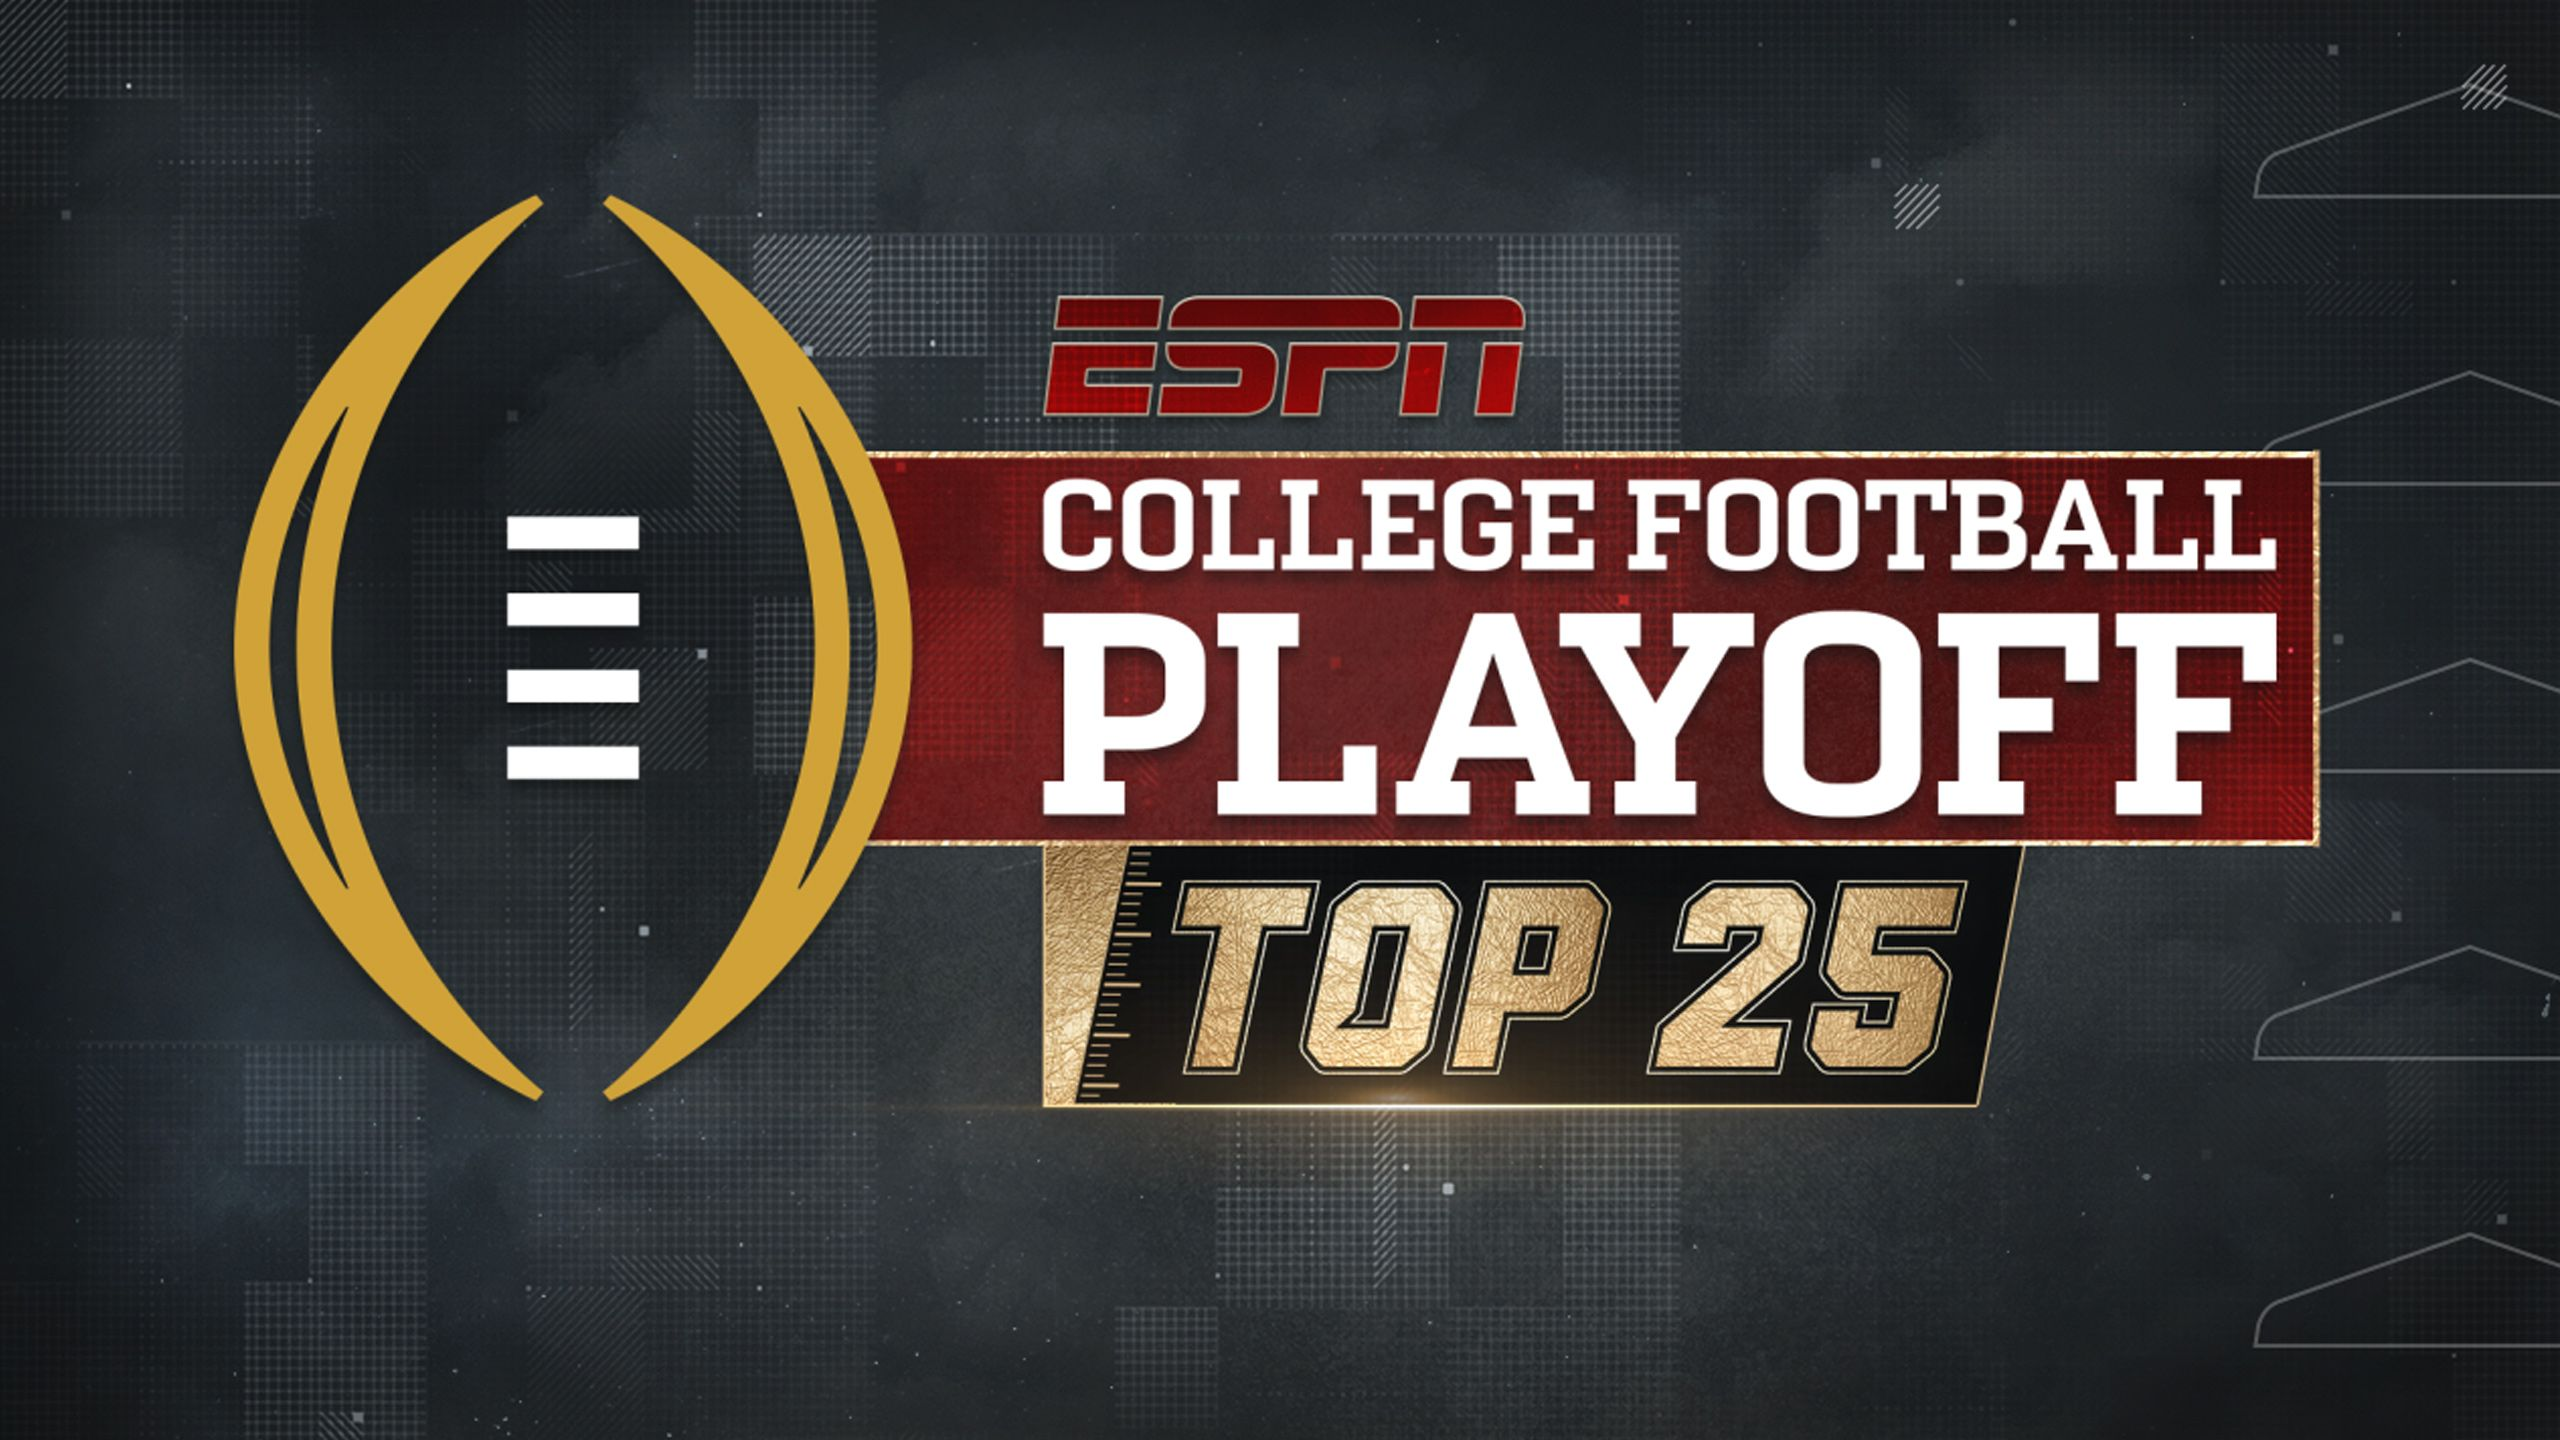 College Football Playoff: Top 25 Presented by Chick-fil-A